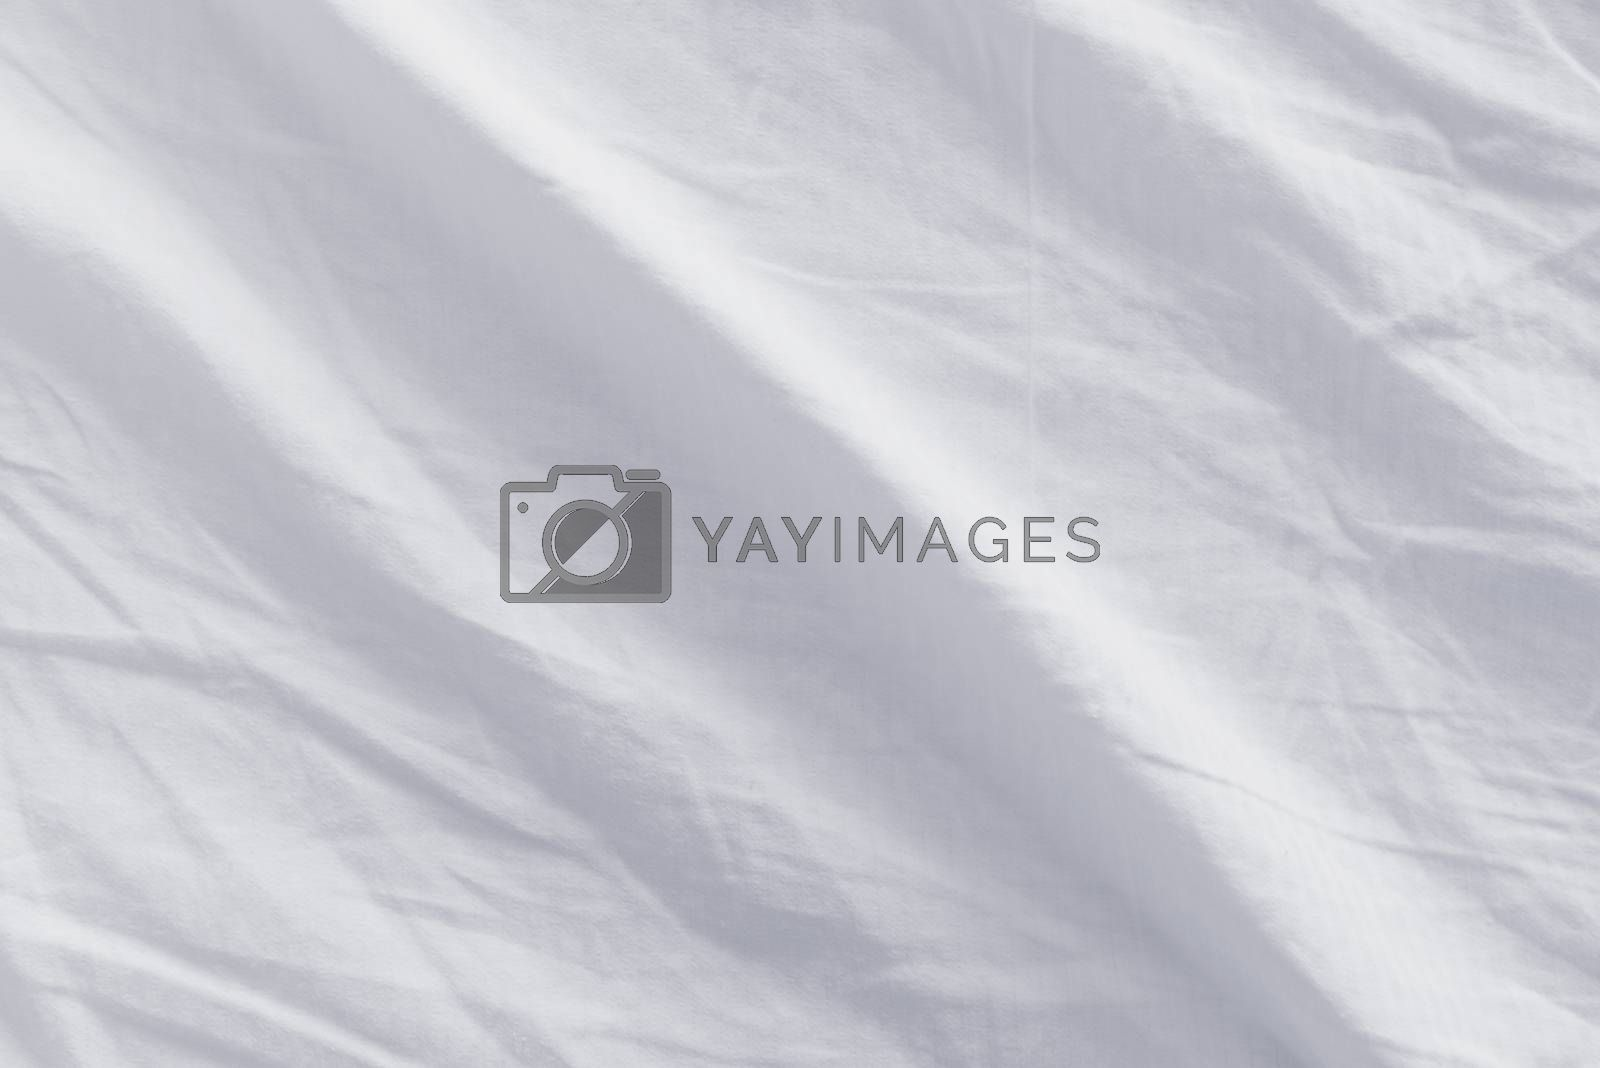 Crumpled bed sheets texture, top view of used bed sheets